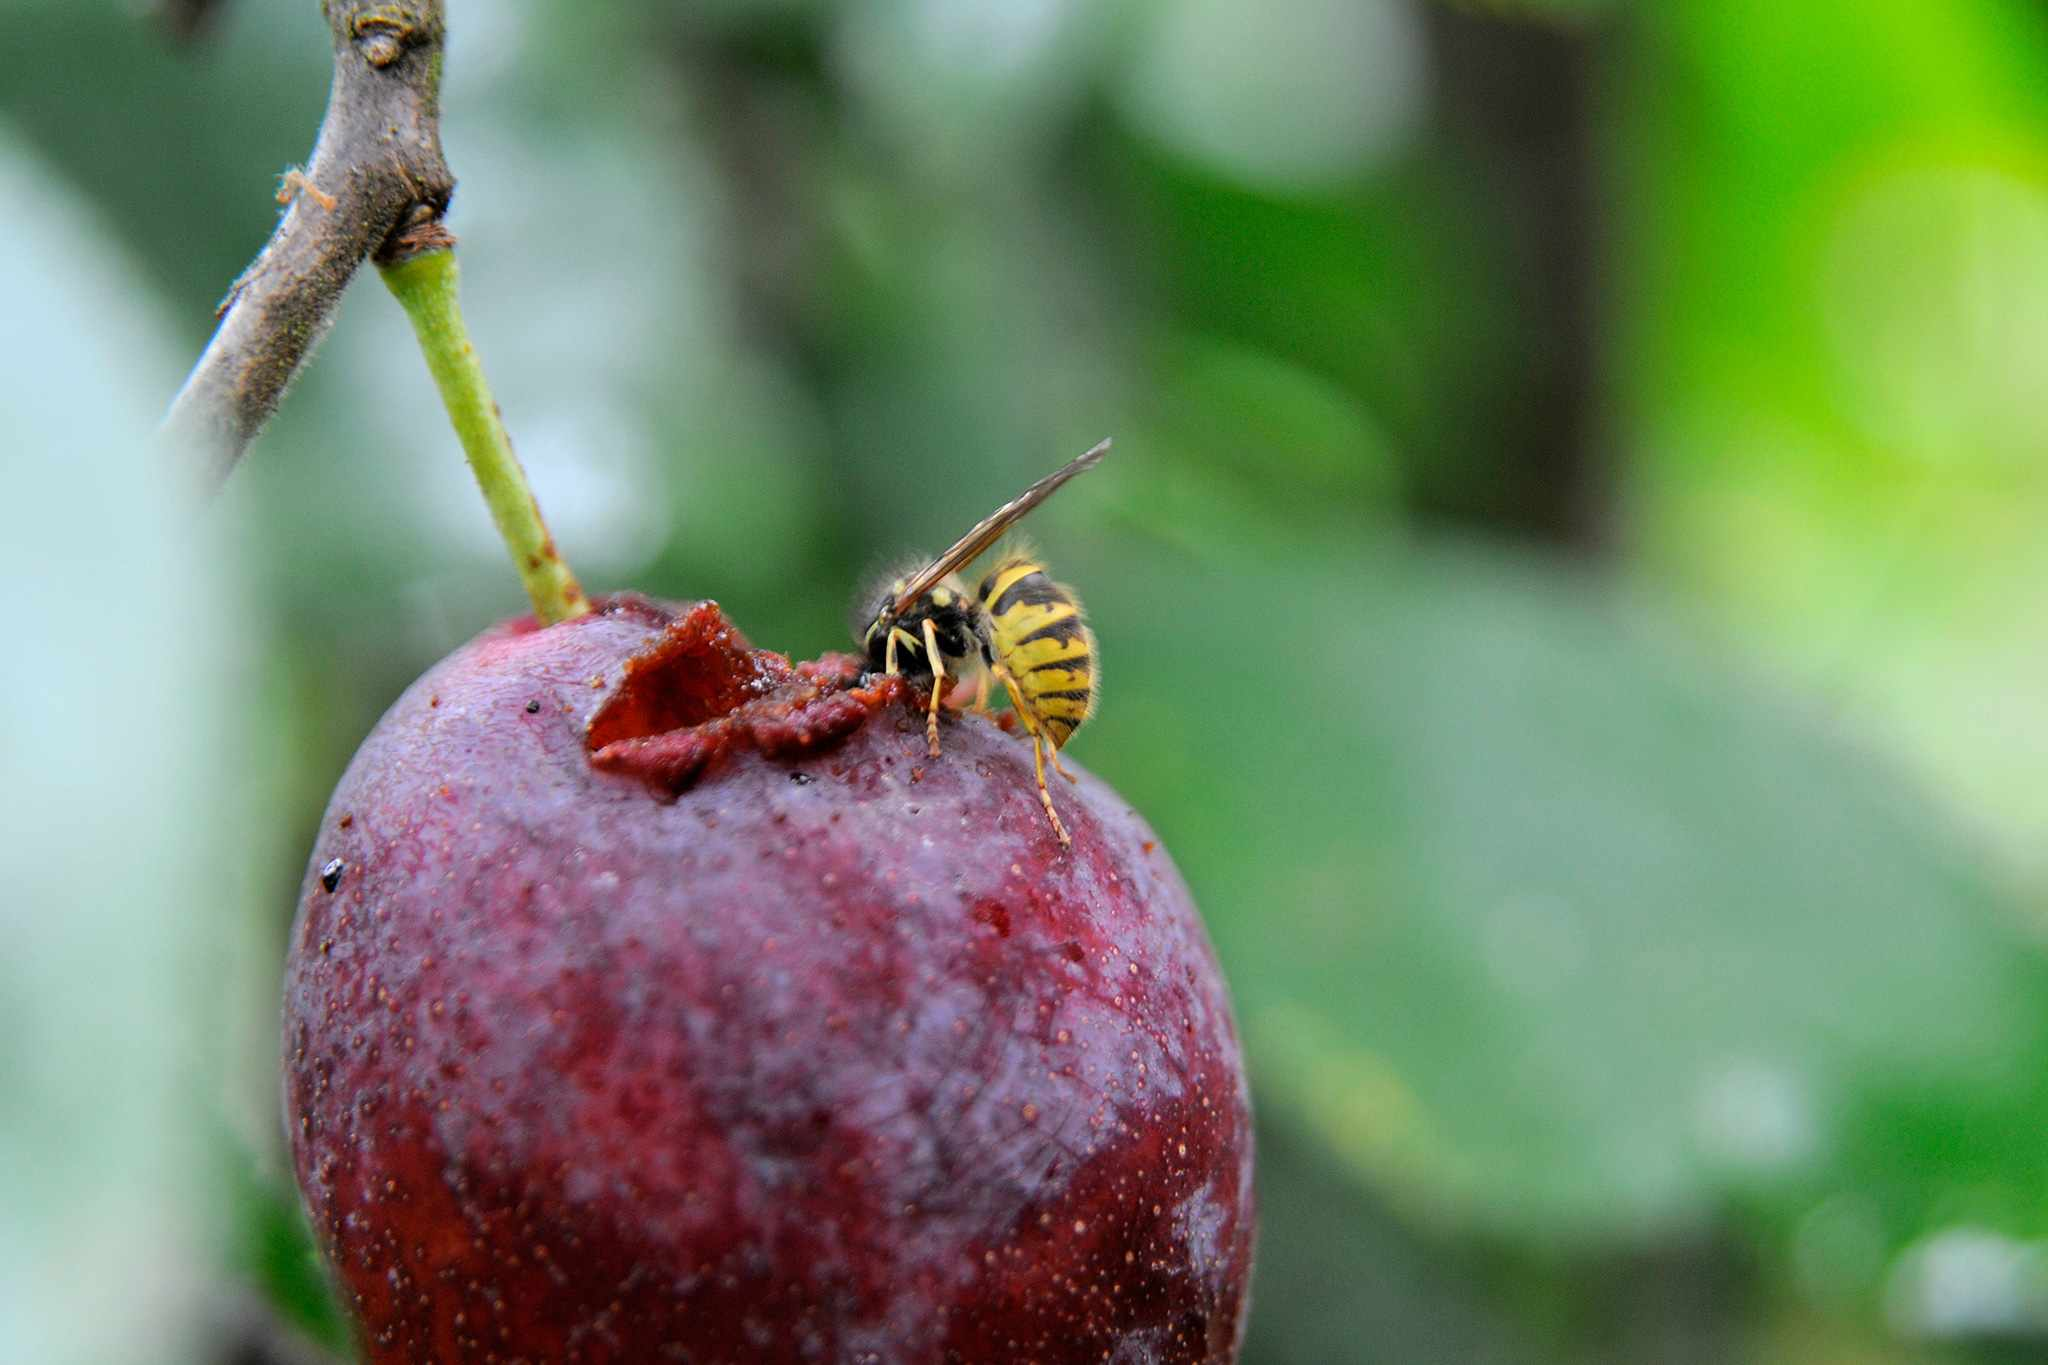 A wasp feeding on a plum